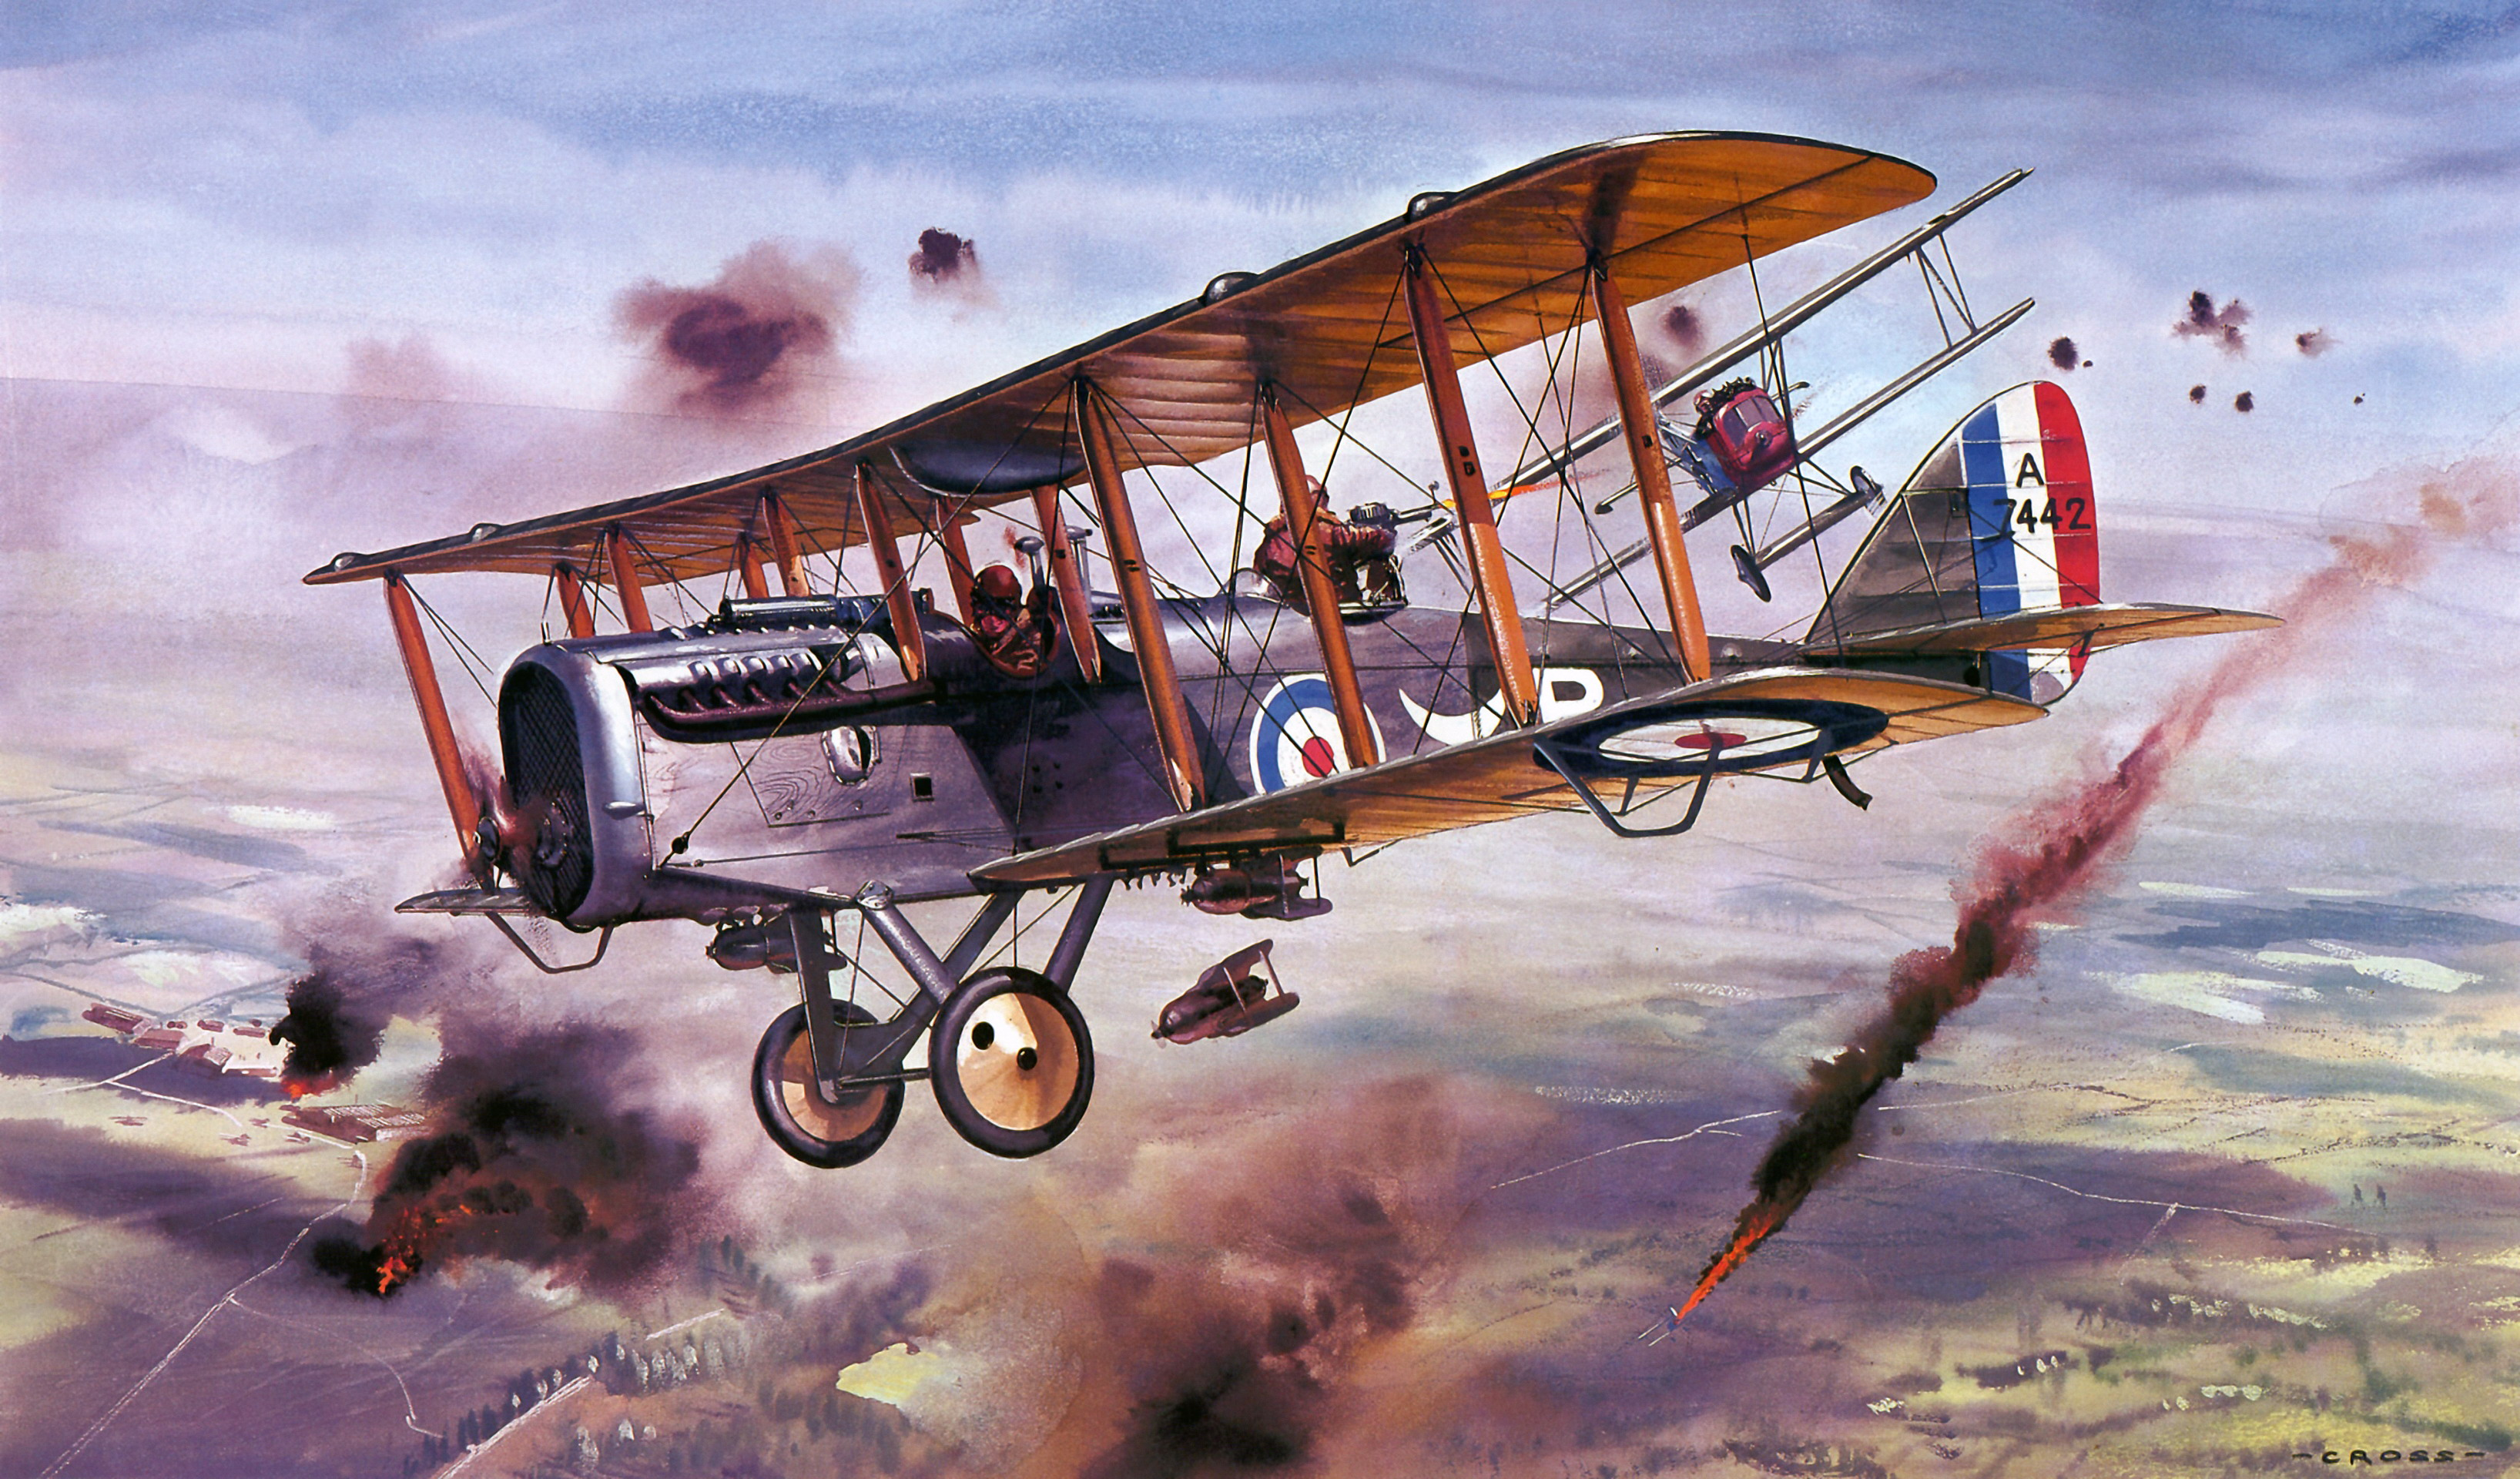 an analysis of the development of a spy aircraft in the first world war Illustrated with detailed artworks of combat aircraft and their markings, aircraft of world war i: the essential aircraft identification guide is a comprehensive study of the aircraft that fought in the great war of 1914-18.